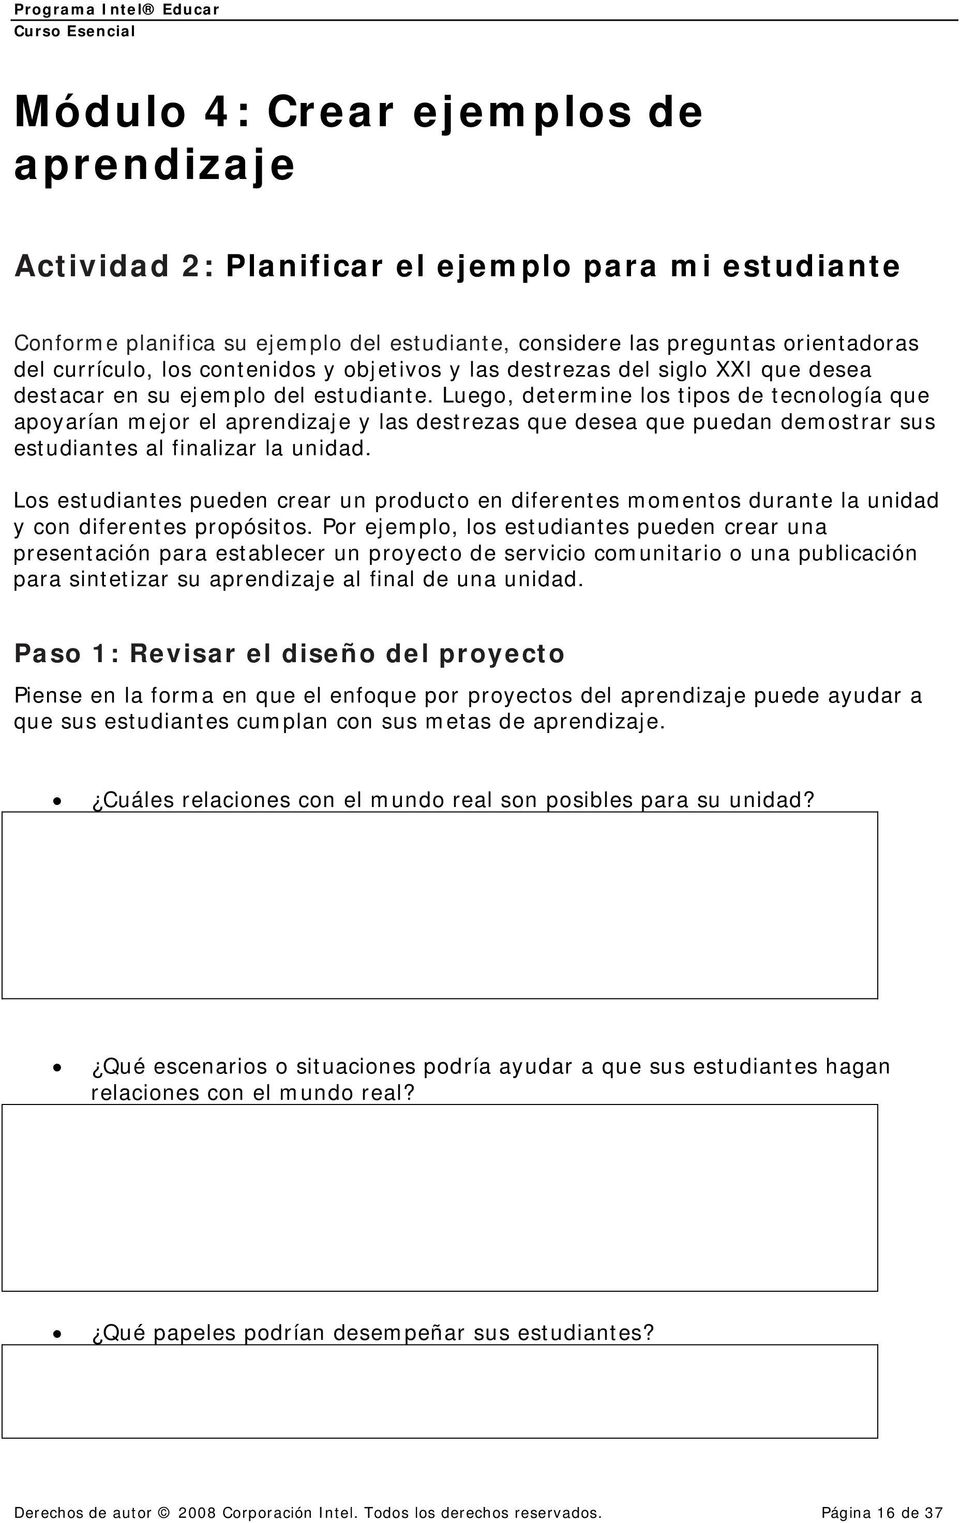 Curso Esencial De Intel Educar Pdf Free Download